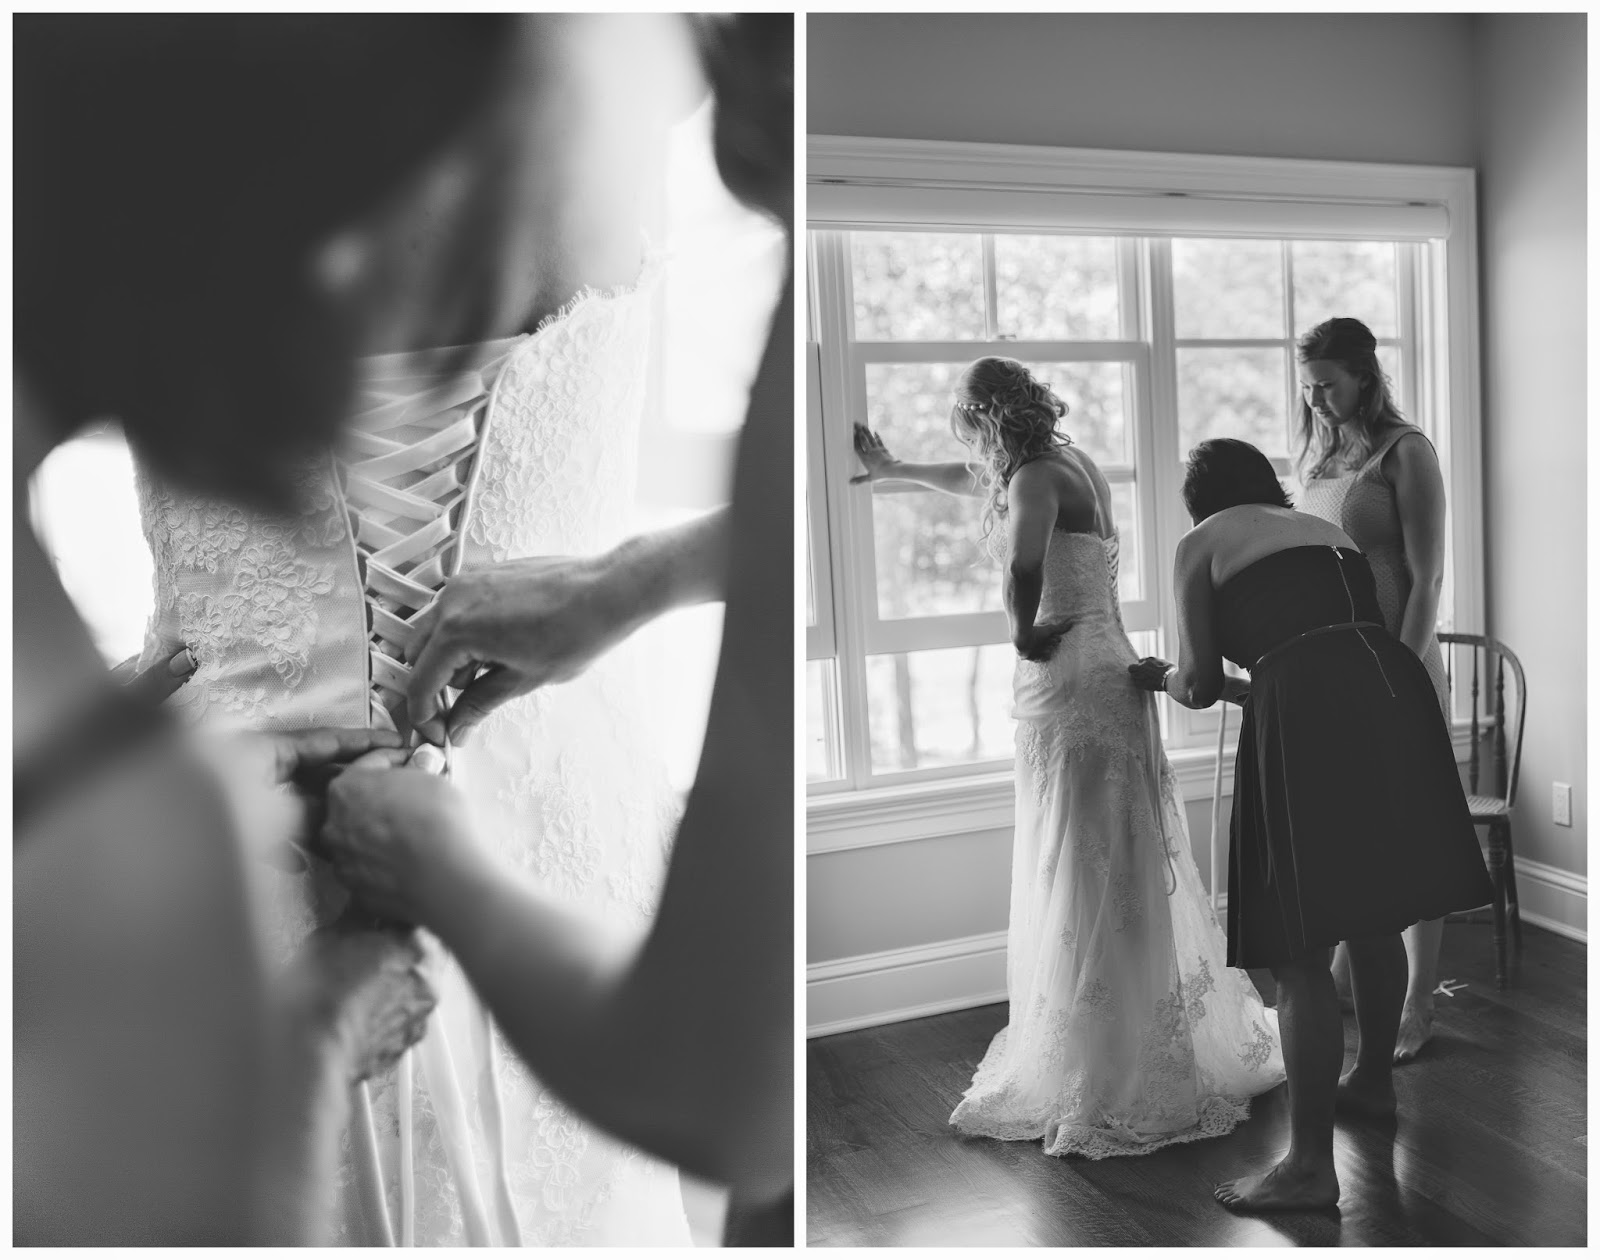 Megan and Brianu0027s Door County Lakeside Wedding & Andrea Naylor Photography: Megan and Brianu0027s Door County Lakeside ... pezcame.com